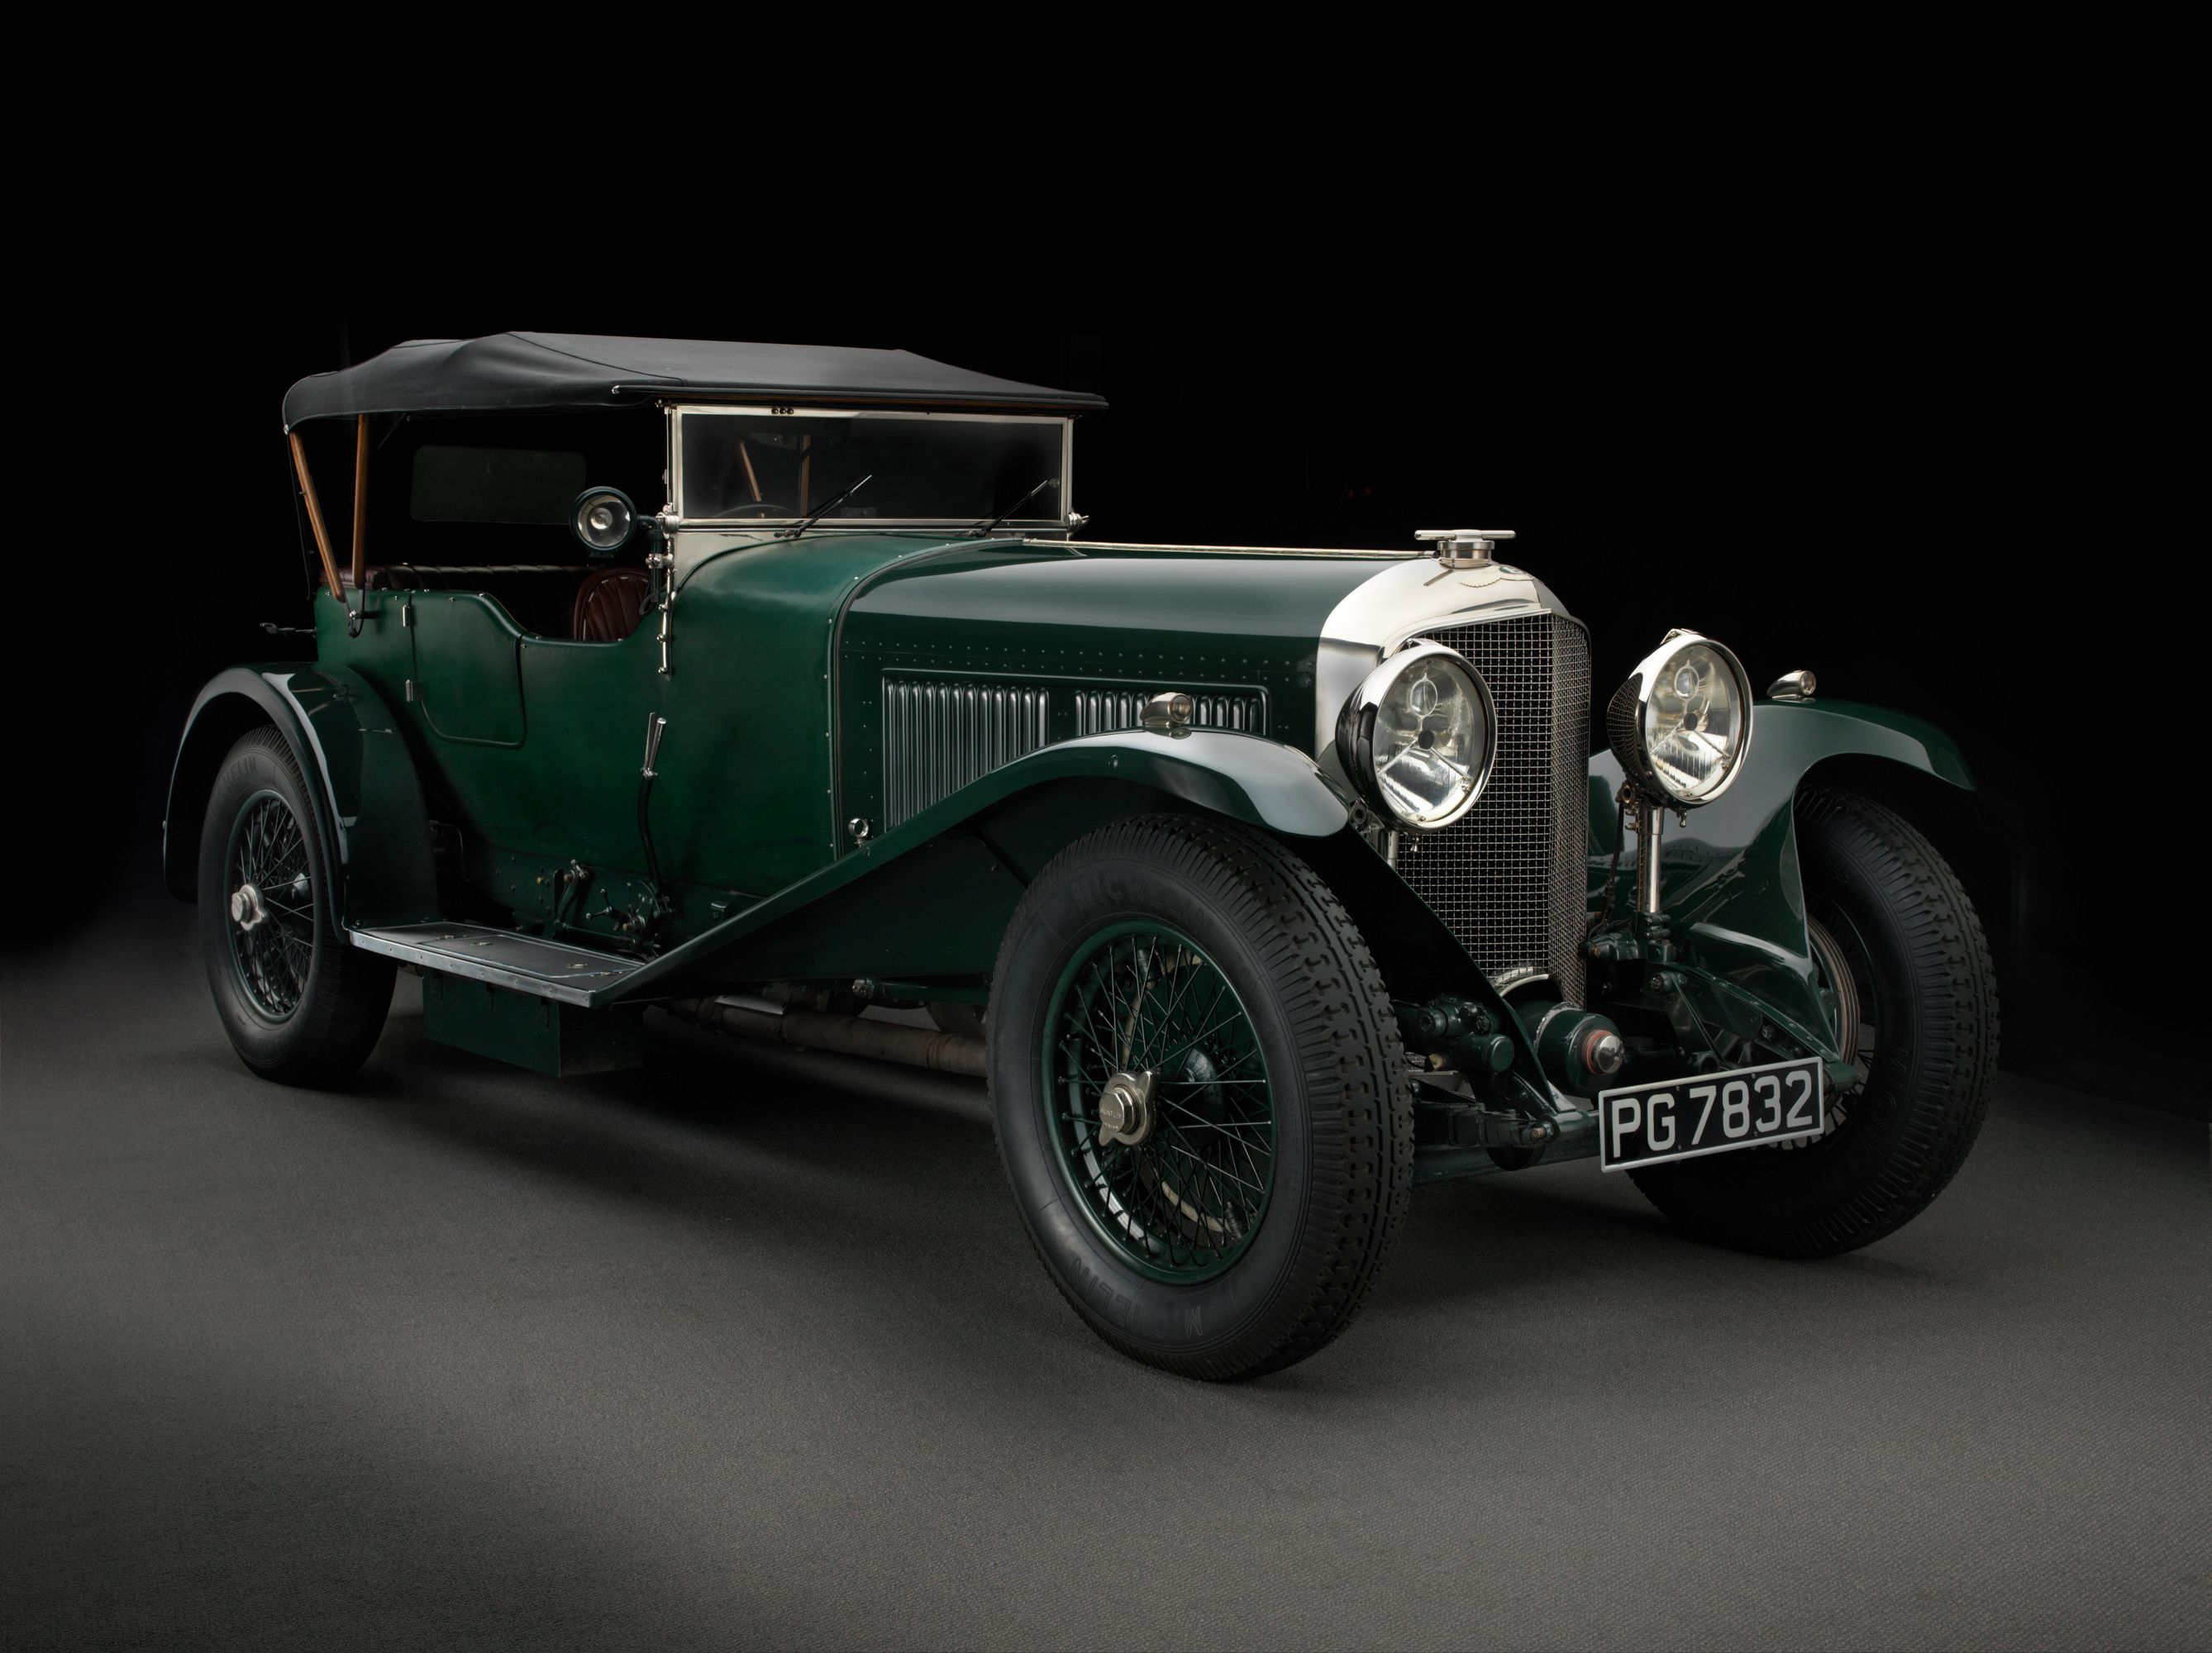 more october lose exhaust than suspension magazine mechanic brits year bentley million a pa workshop garage days finding